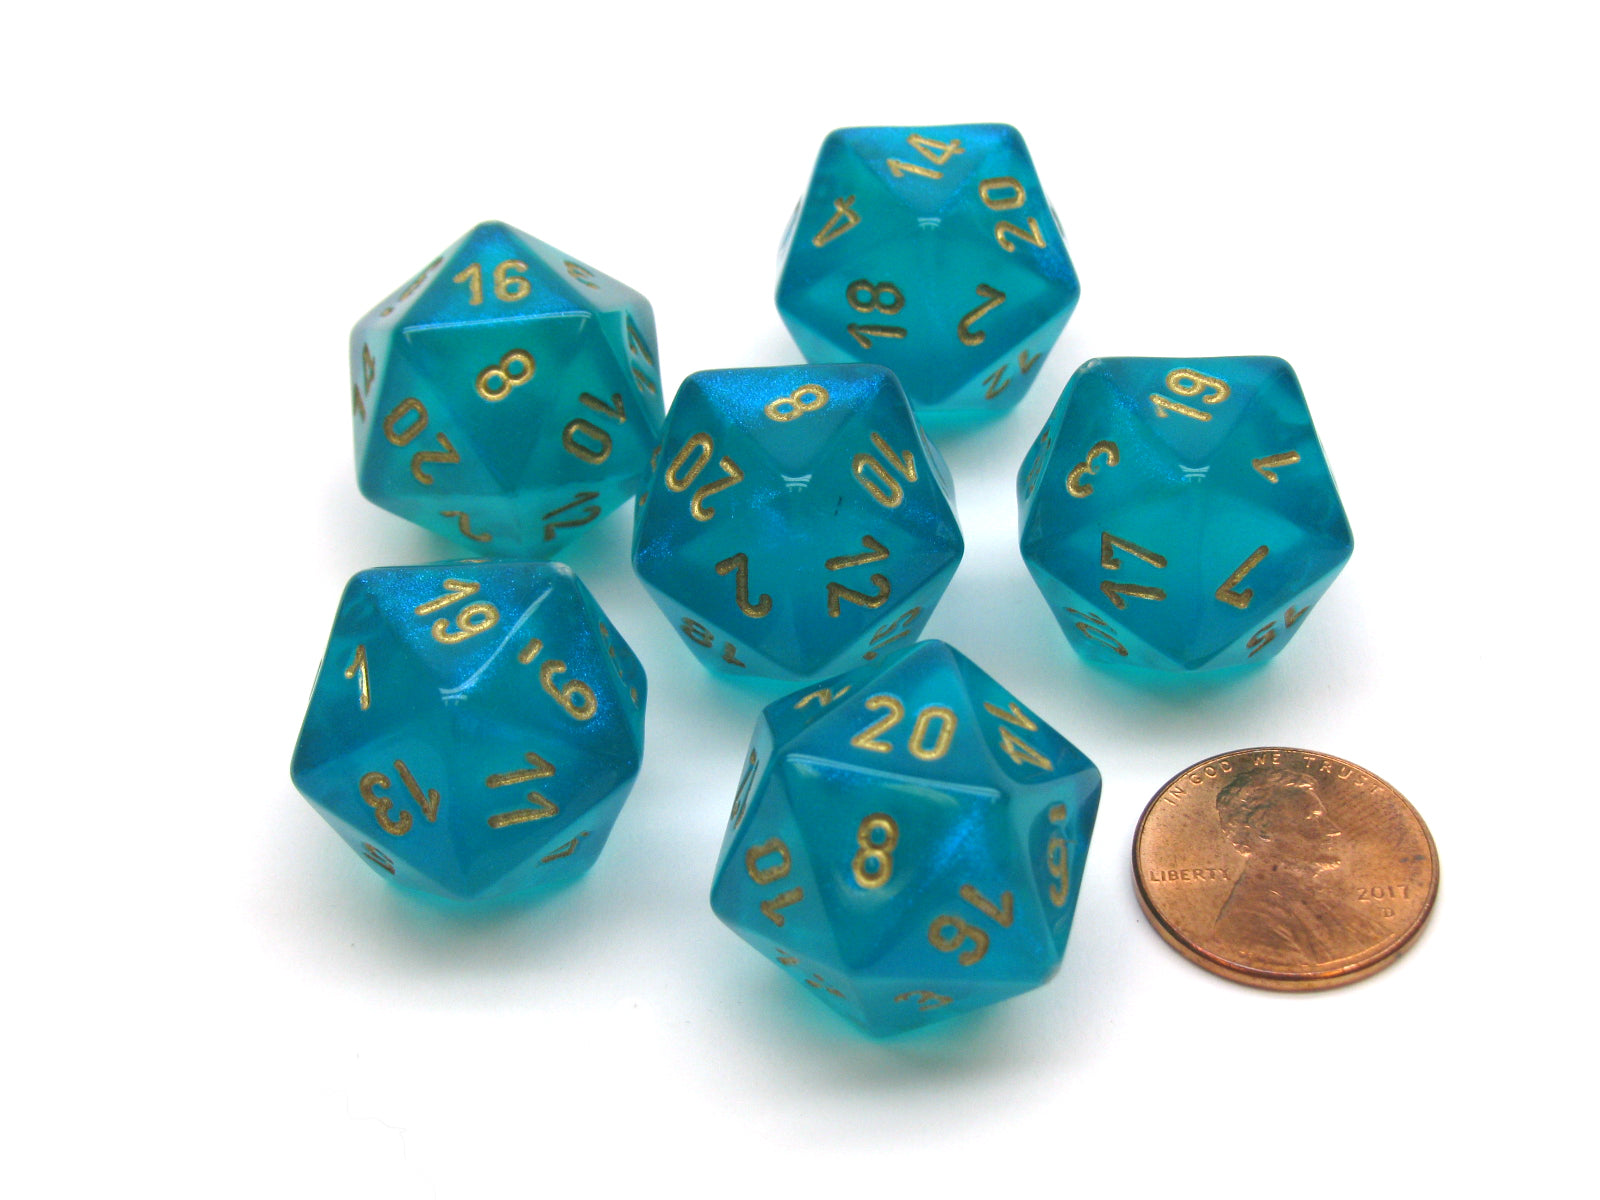 Borealis 20 Sided D20 Chessex Dice, 6 Pieces - Teal with Gold Numbers